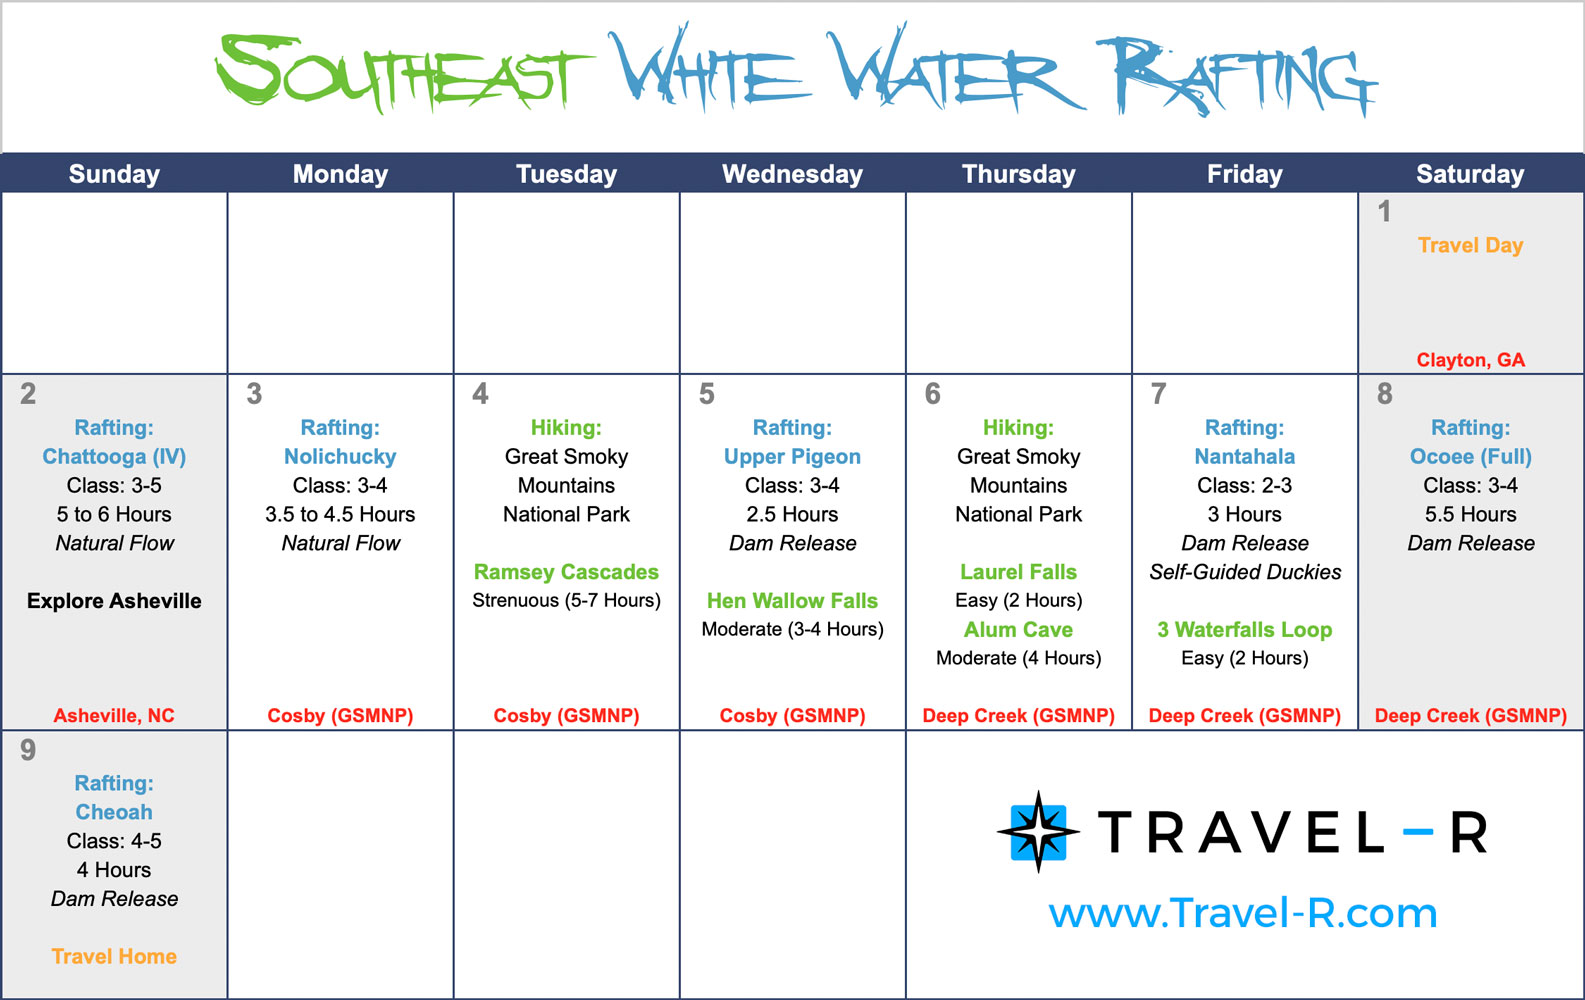 Southeast White Water Rafting 1-Week (9-Day) Itinerary